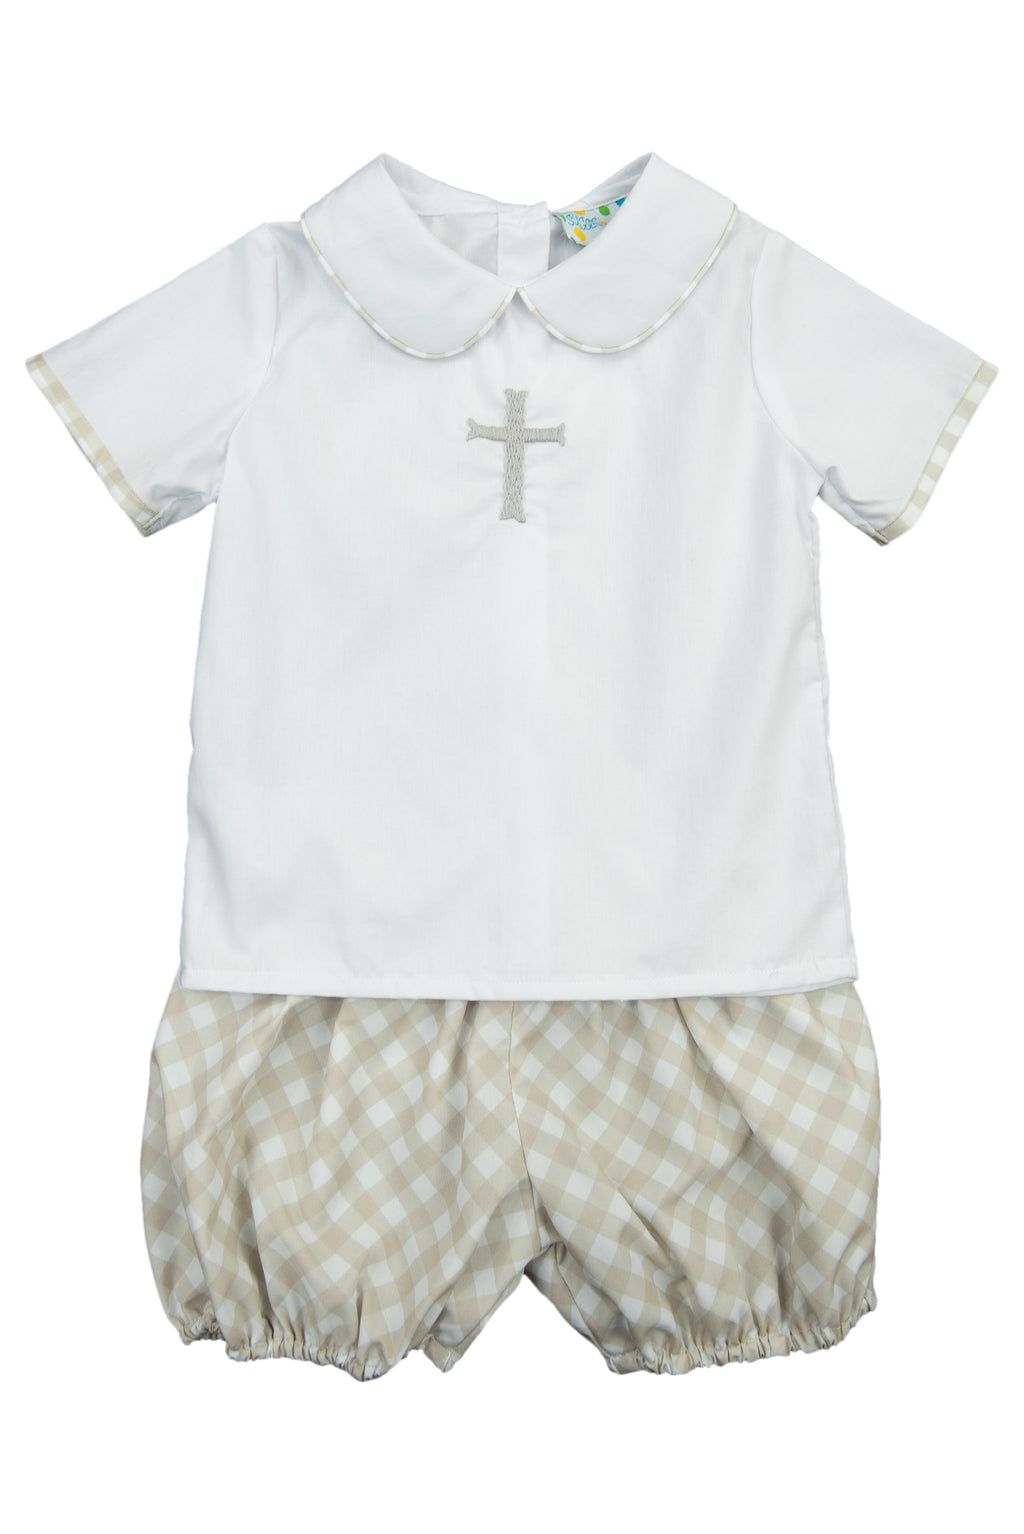 Boys Hand Embroidered Cross Bubble Shorts Set